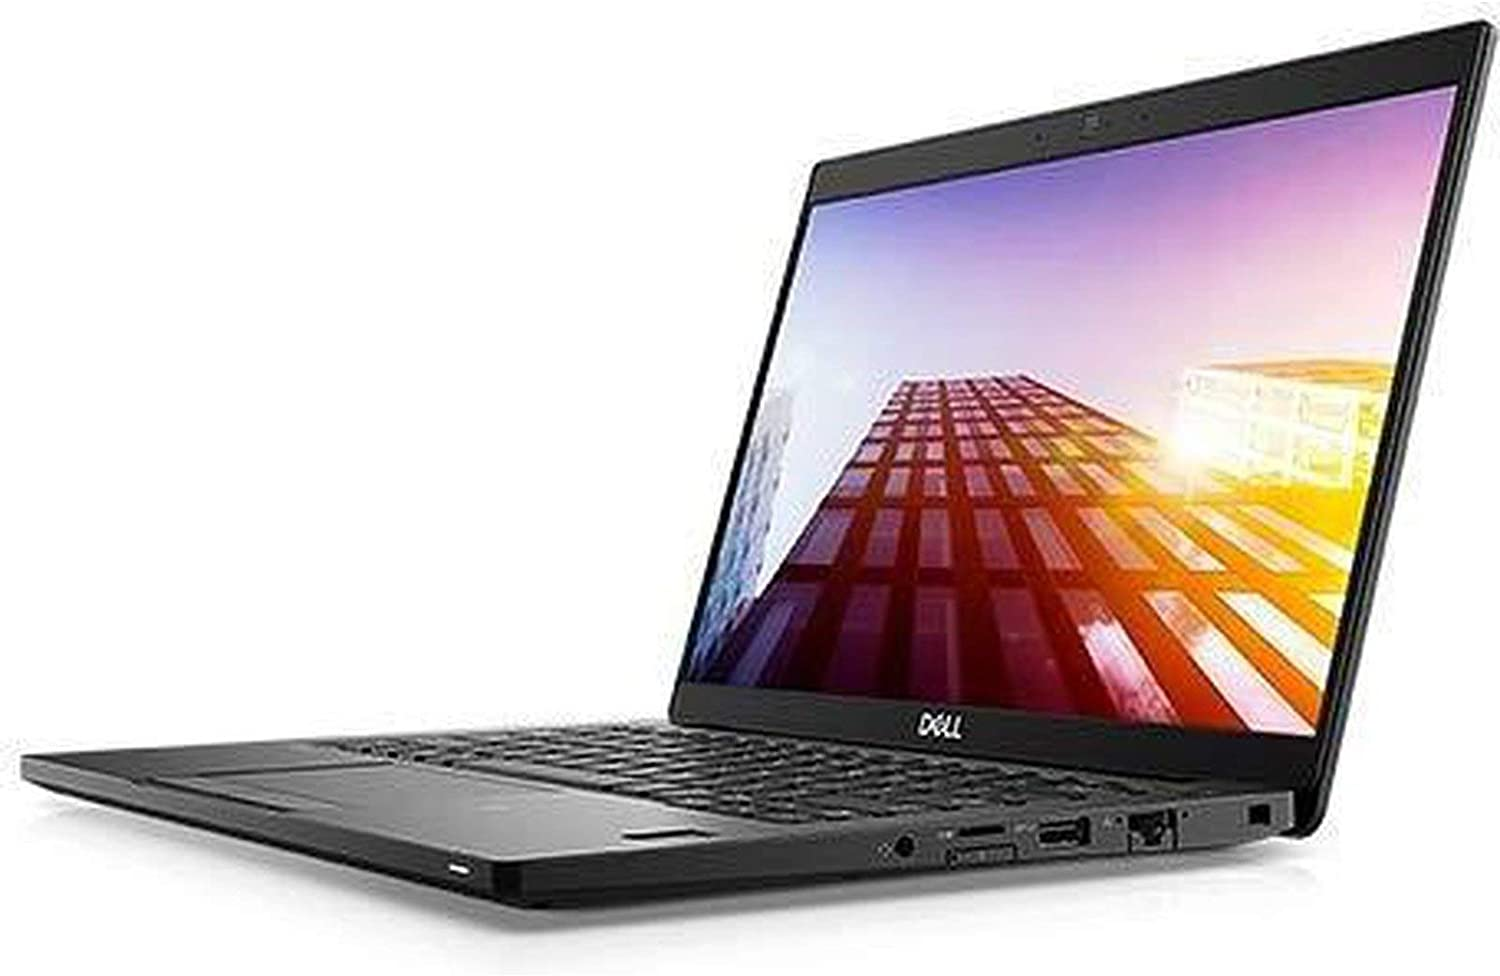 Dell Latitude 7390 Notebook with Intel QC i7-8650U, 16GB 256GB SSD, 13.3in FHD Windows 10 pro - 3 Years Dell ProSupport (Renewed)